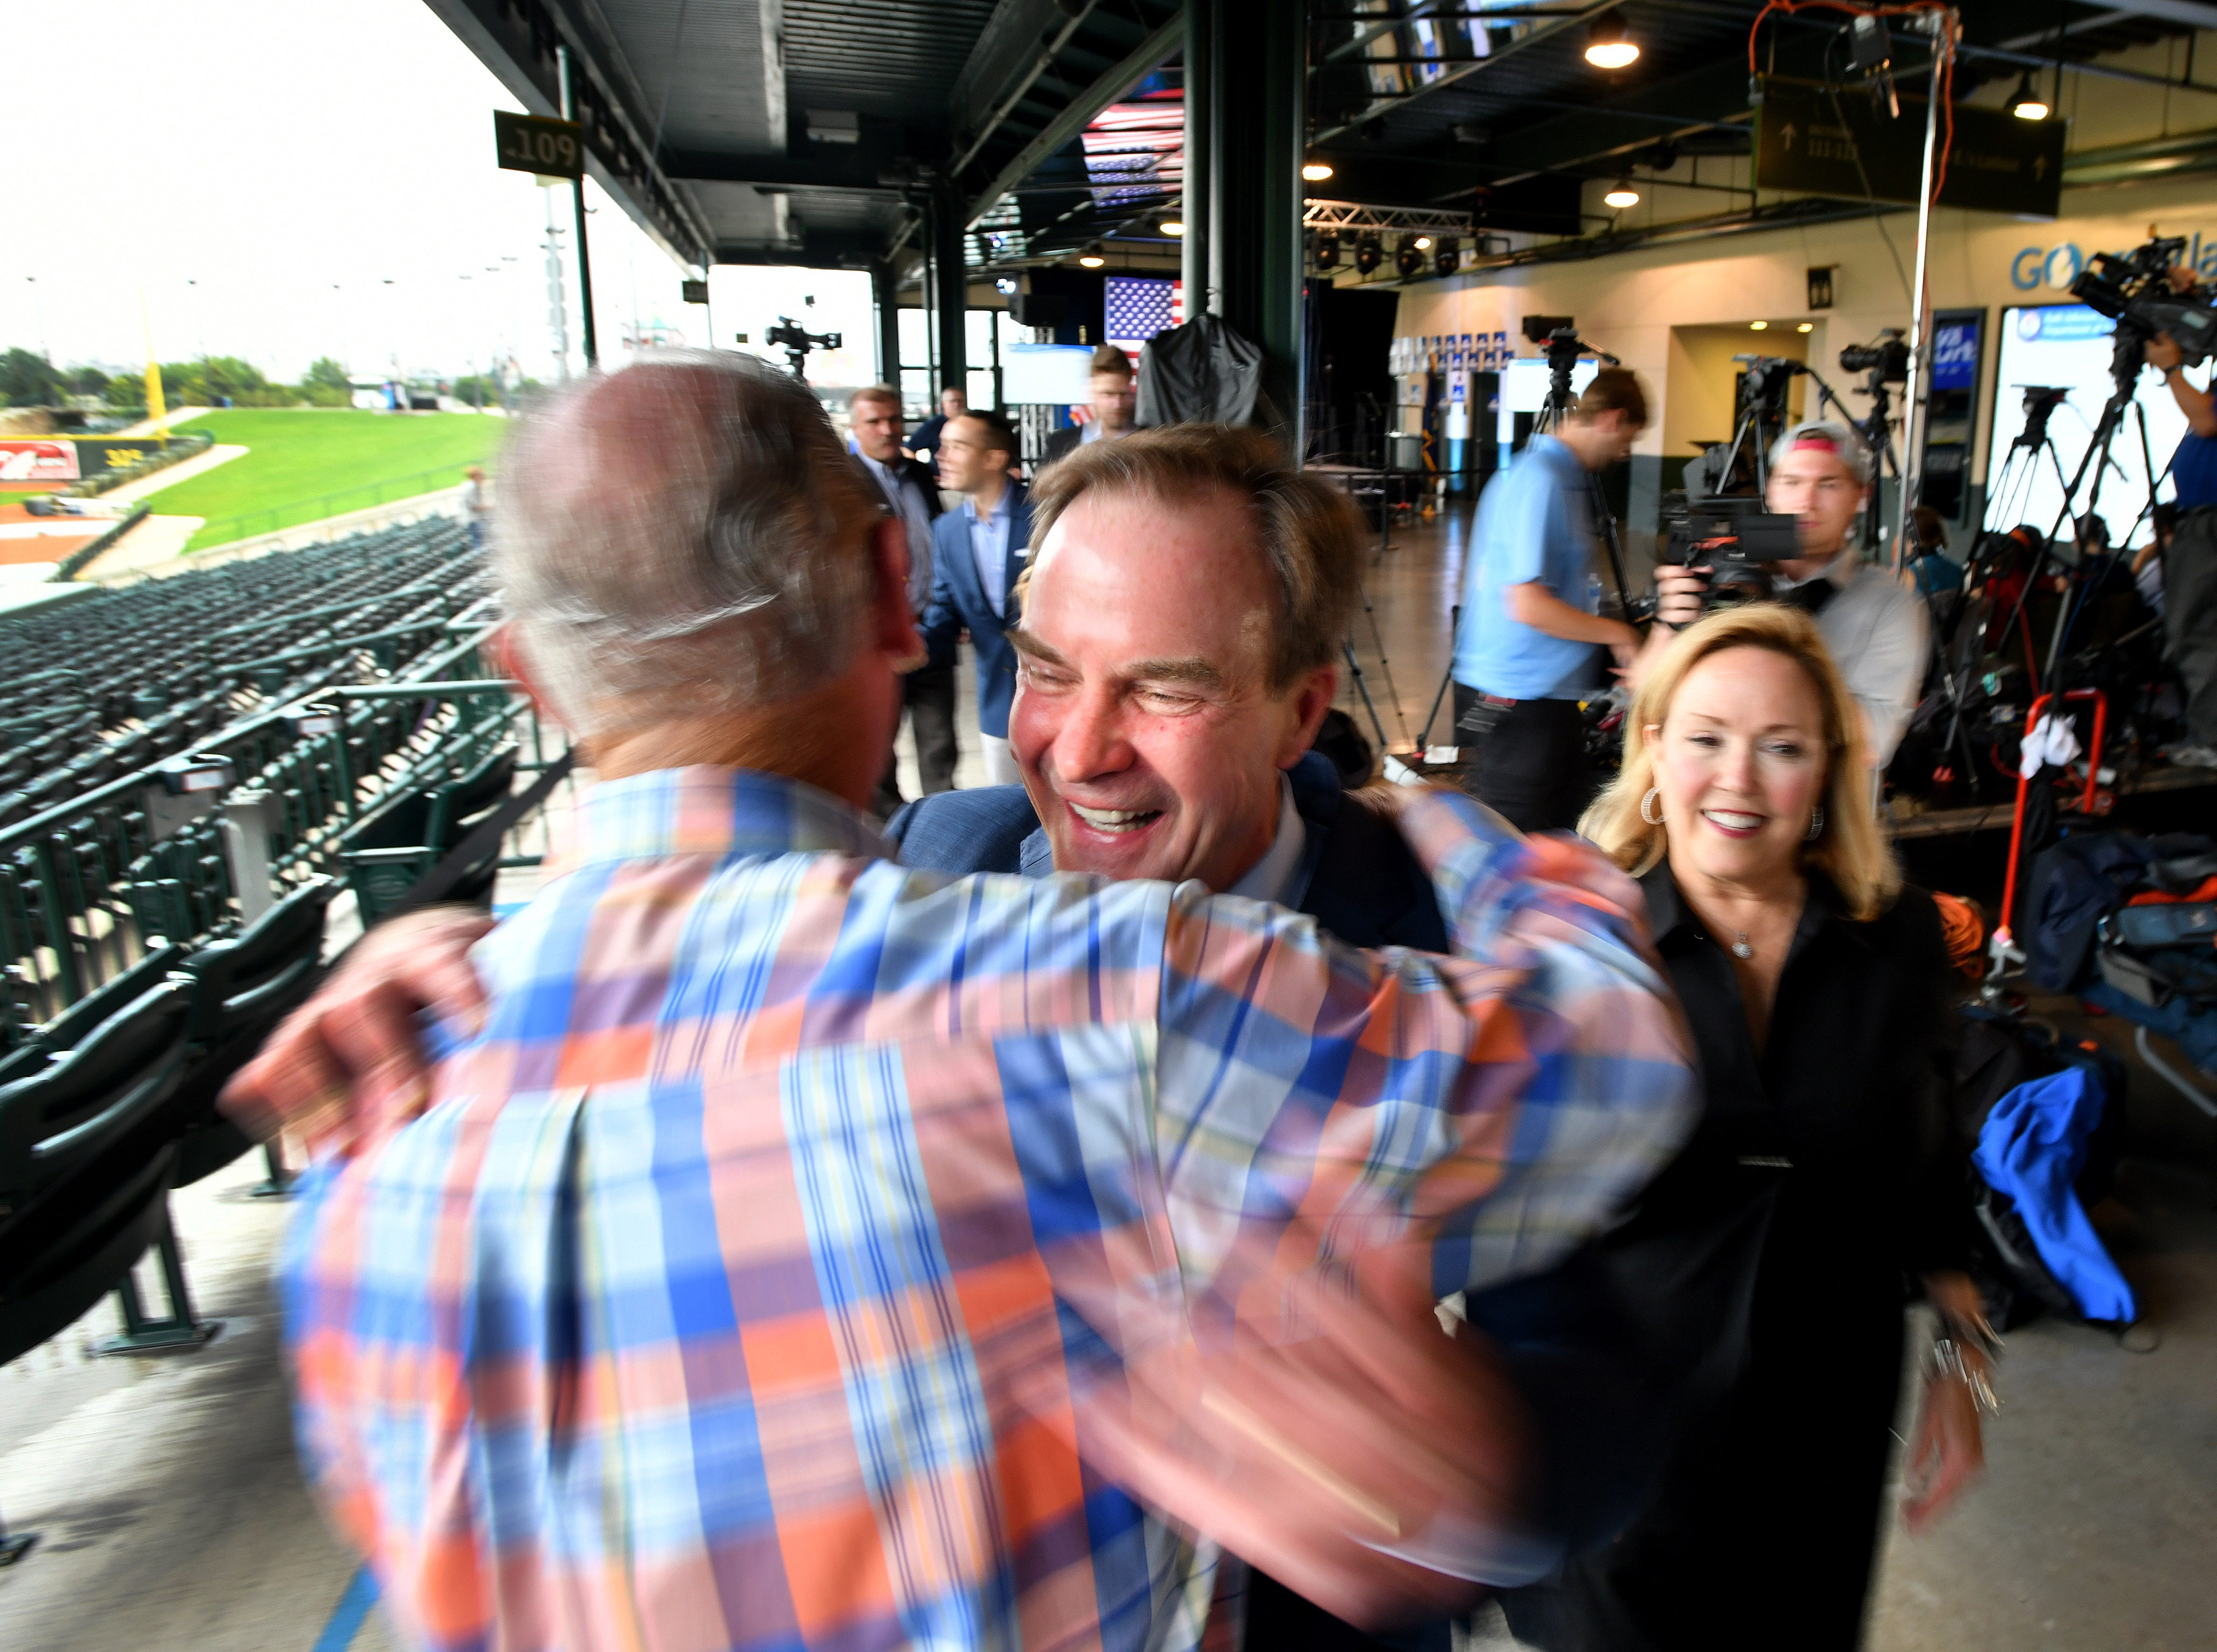 Michigan Attorney General Bill Schuette and his family greet supporter Jim Barrett  at Schuette's post-election event  at Dow Diamond, the home of Midland's minor league baseball team